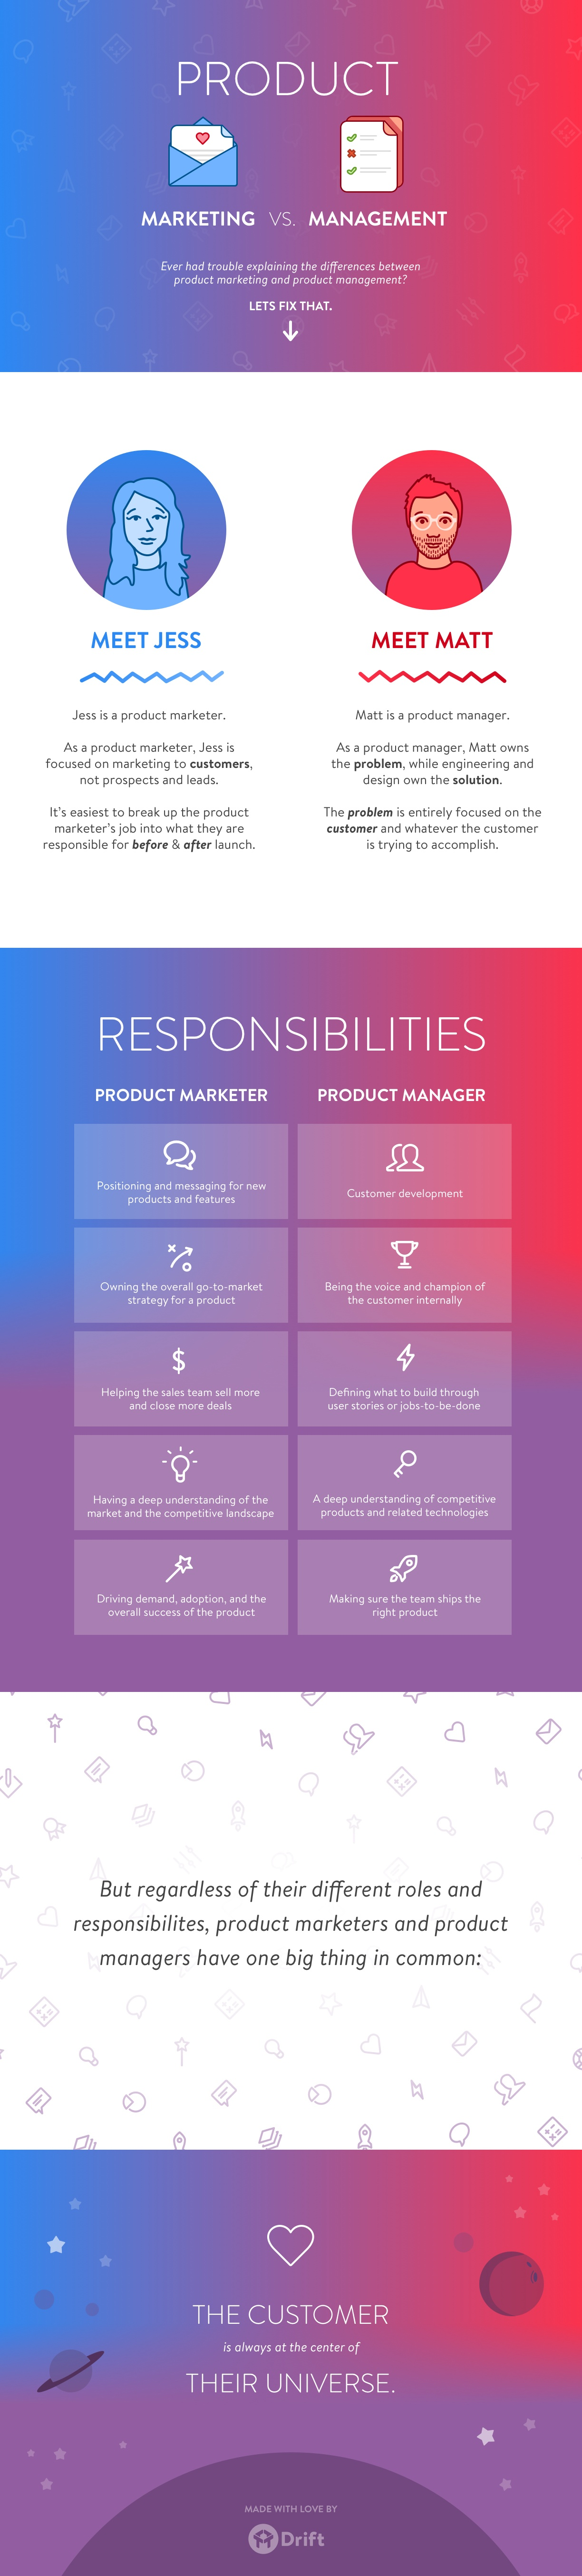 Product Marketing vs Product Management Infographic